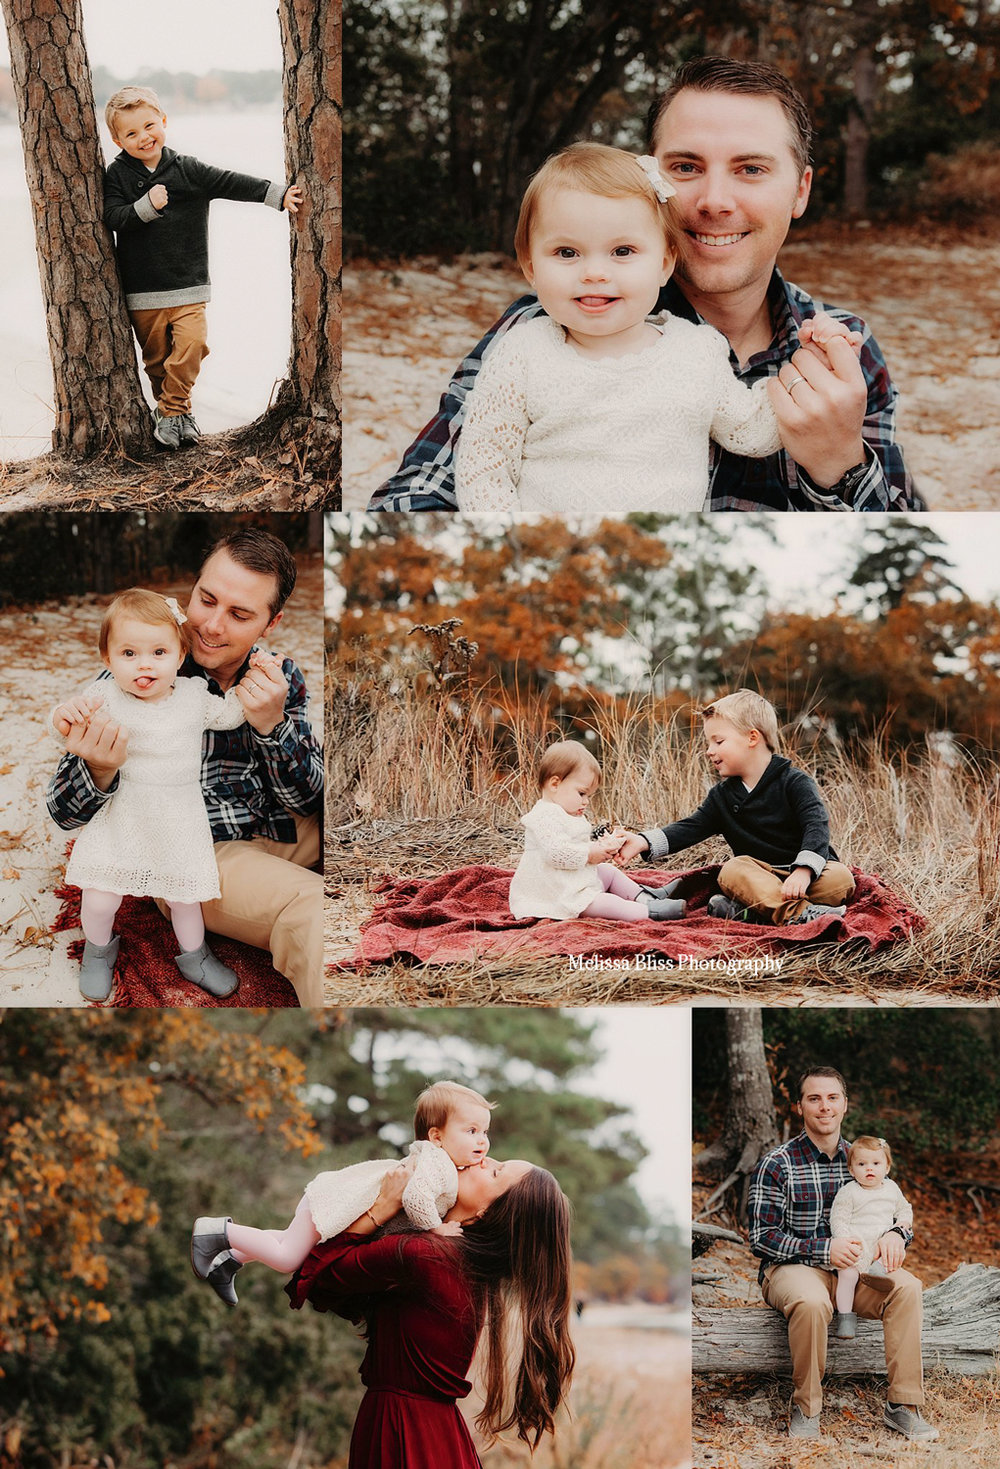 sweet-candid-family-moments-at-virginia-beach-photo-session-photography-by-melissa-bliss-photography.jpg